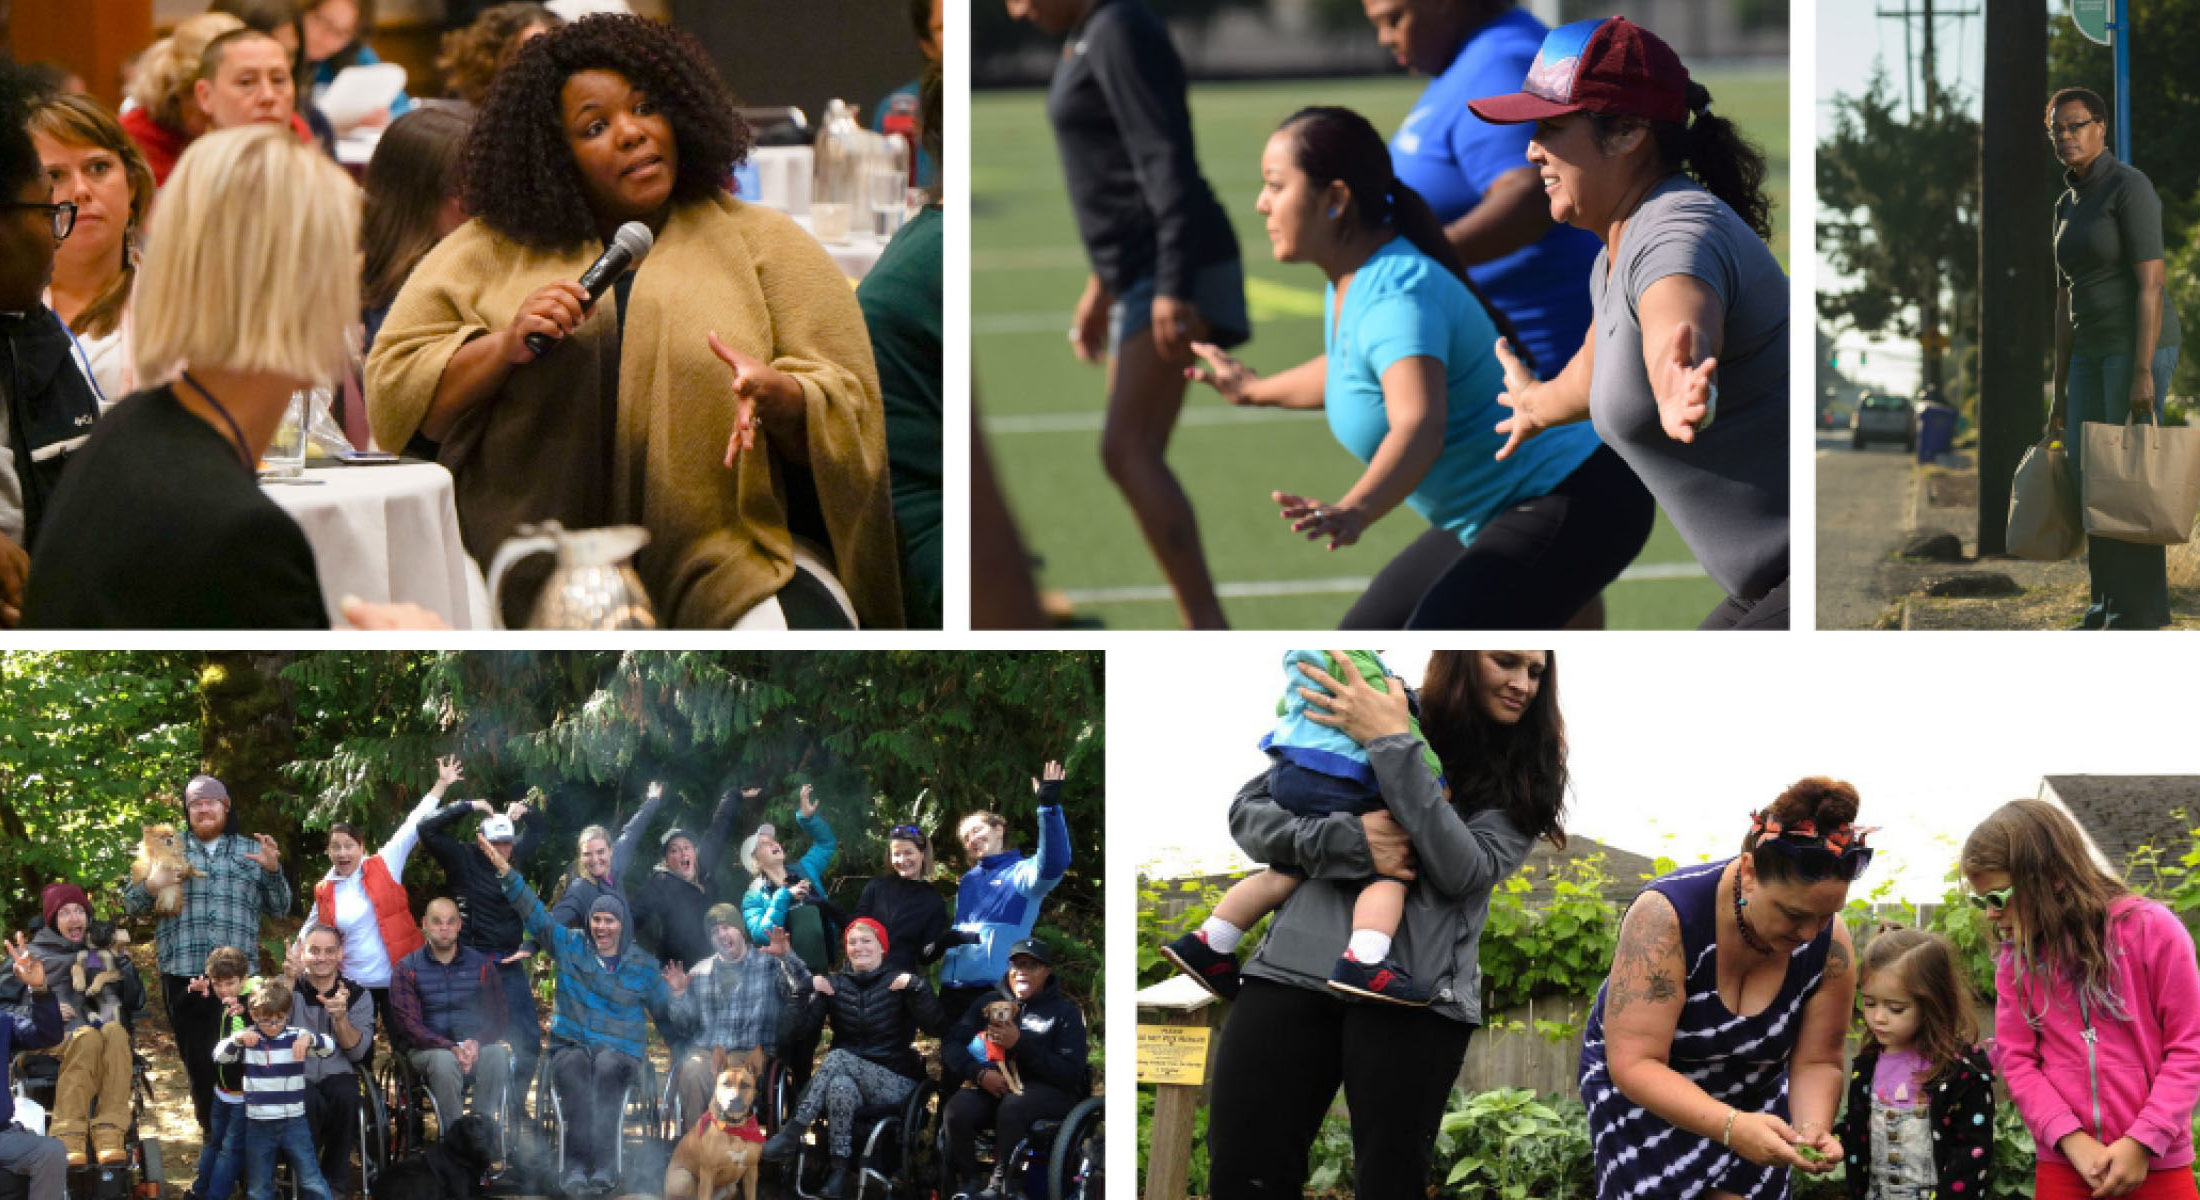 A collage consisting of a Black middle-aged woman speaking up at a public health conference, a diverse group of females working out outside, a Black senior female holding bags of groceries waiting outside at a bus stop looking pensive, a large group of people living with disabilities camping, and a group of young and older females gardening outside